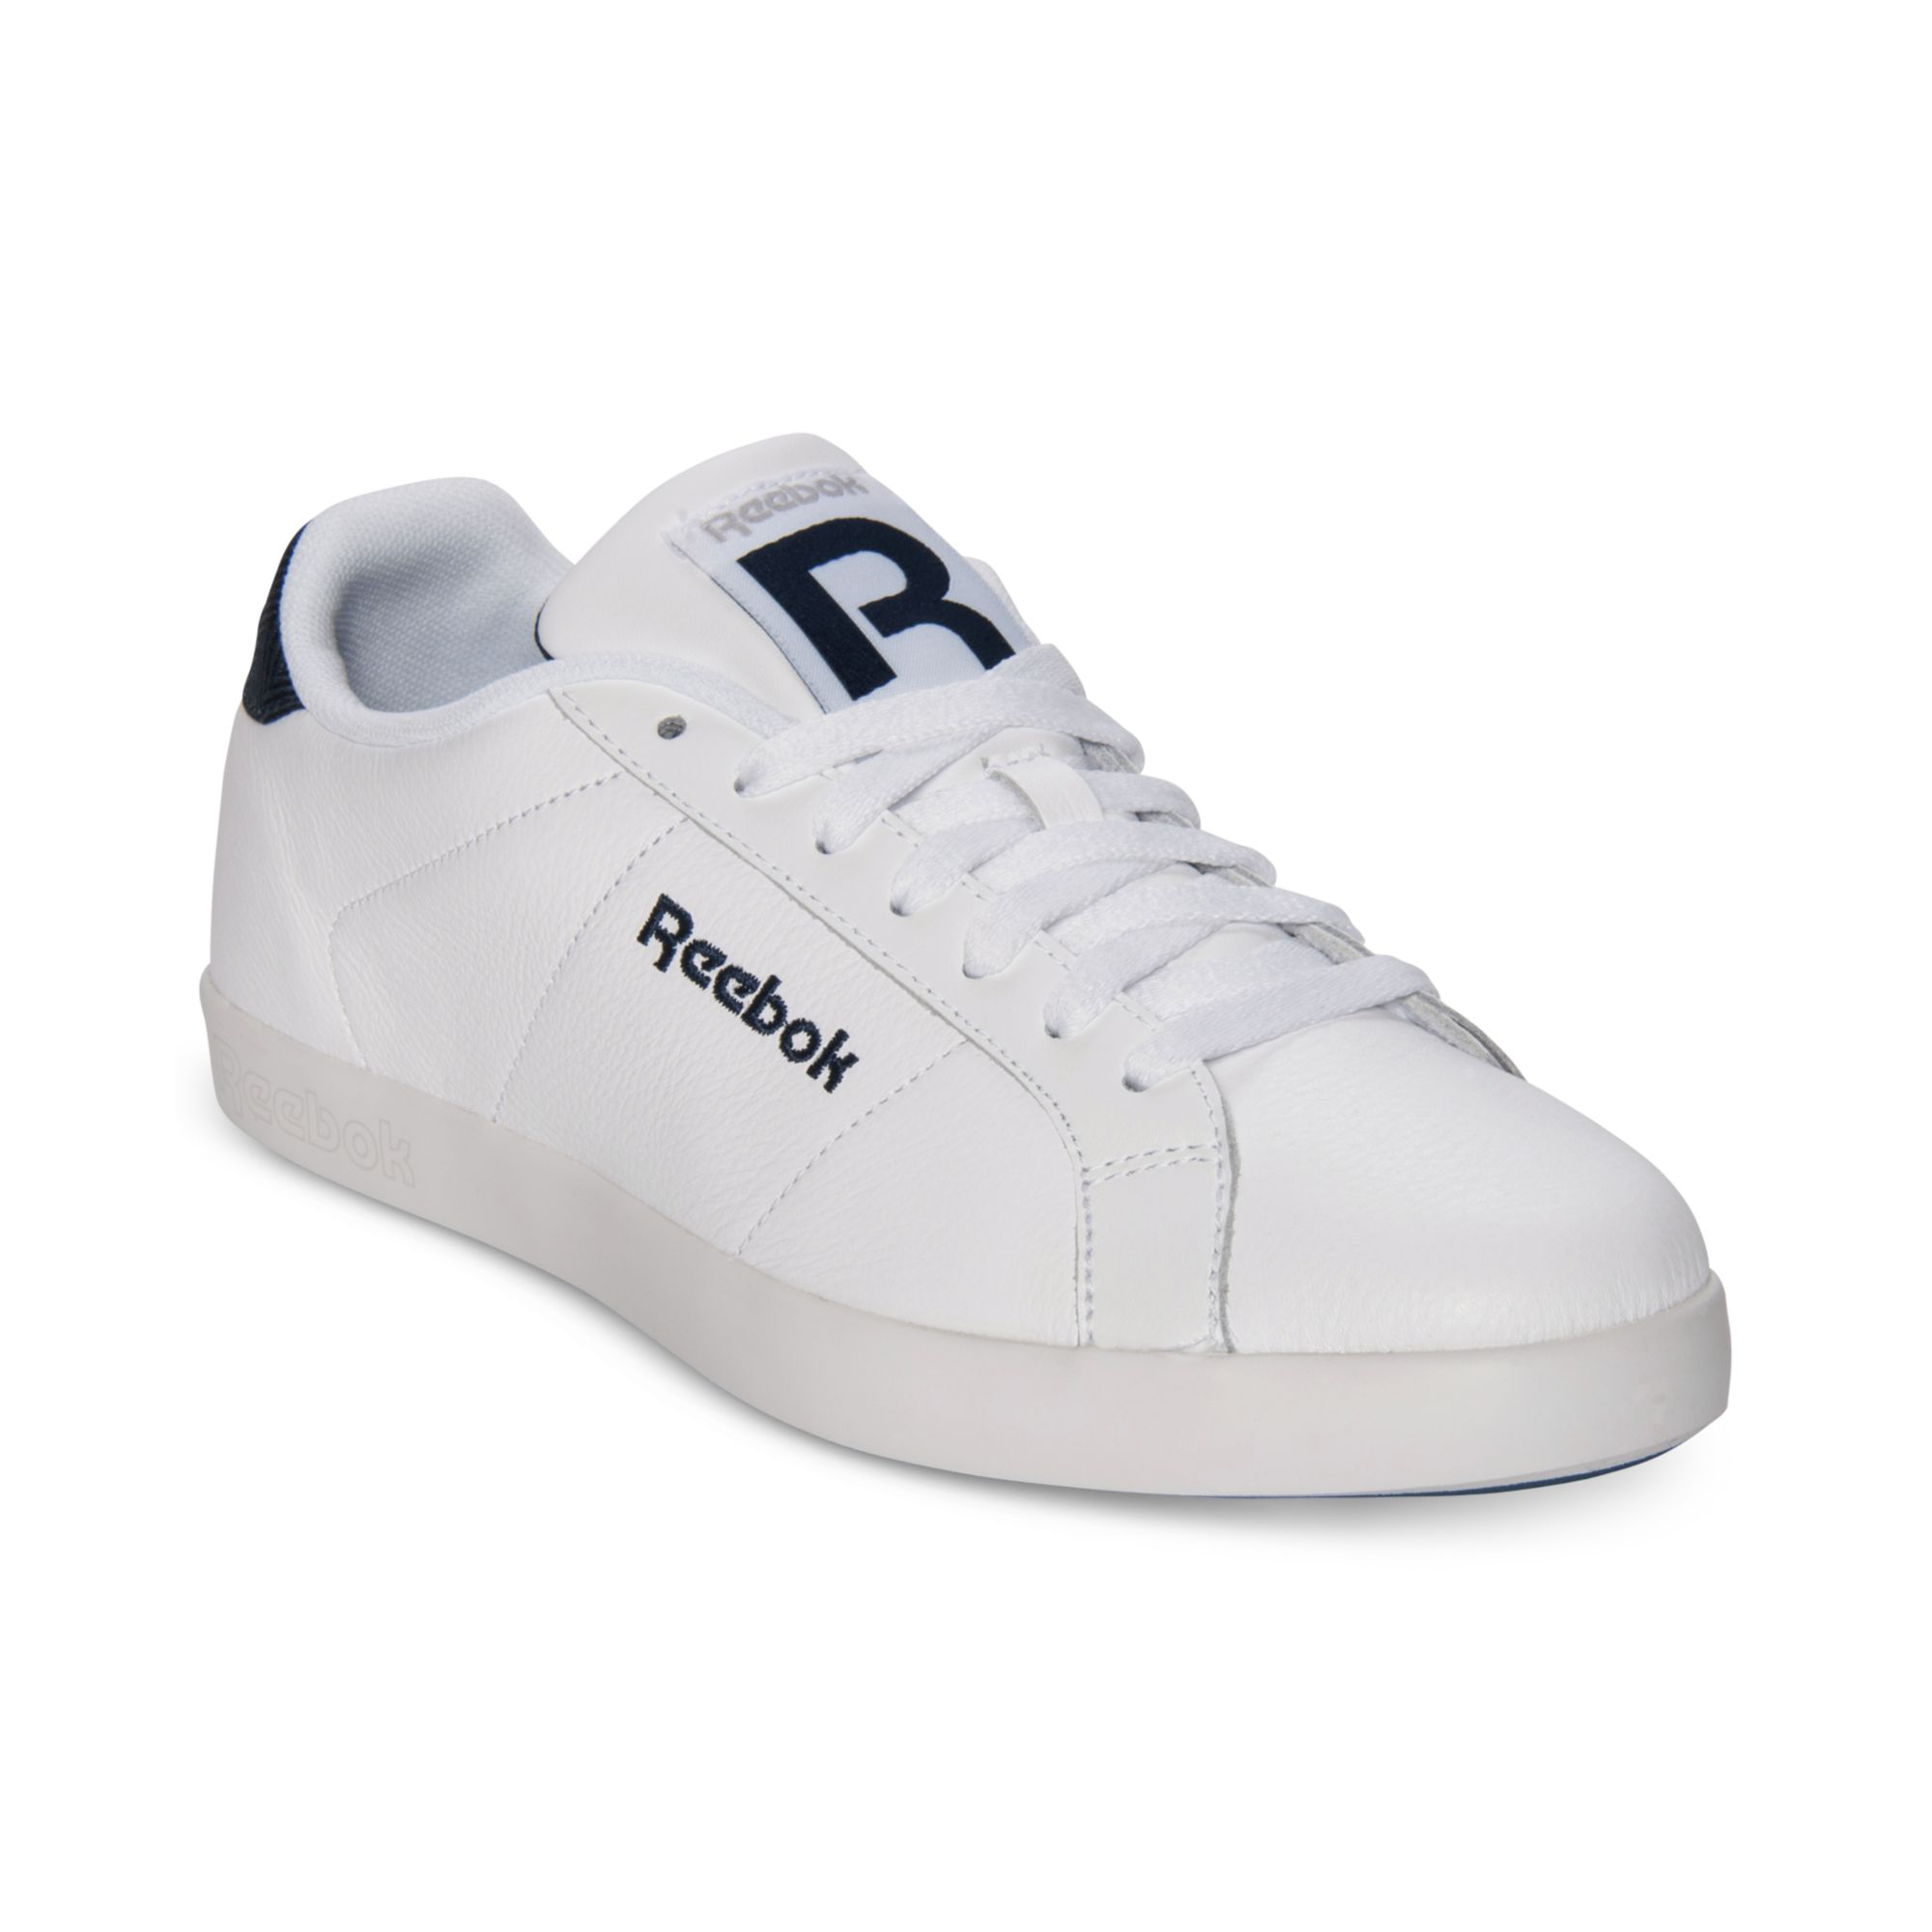 reebok tennis shoes men